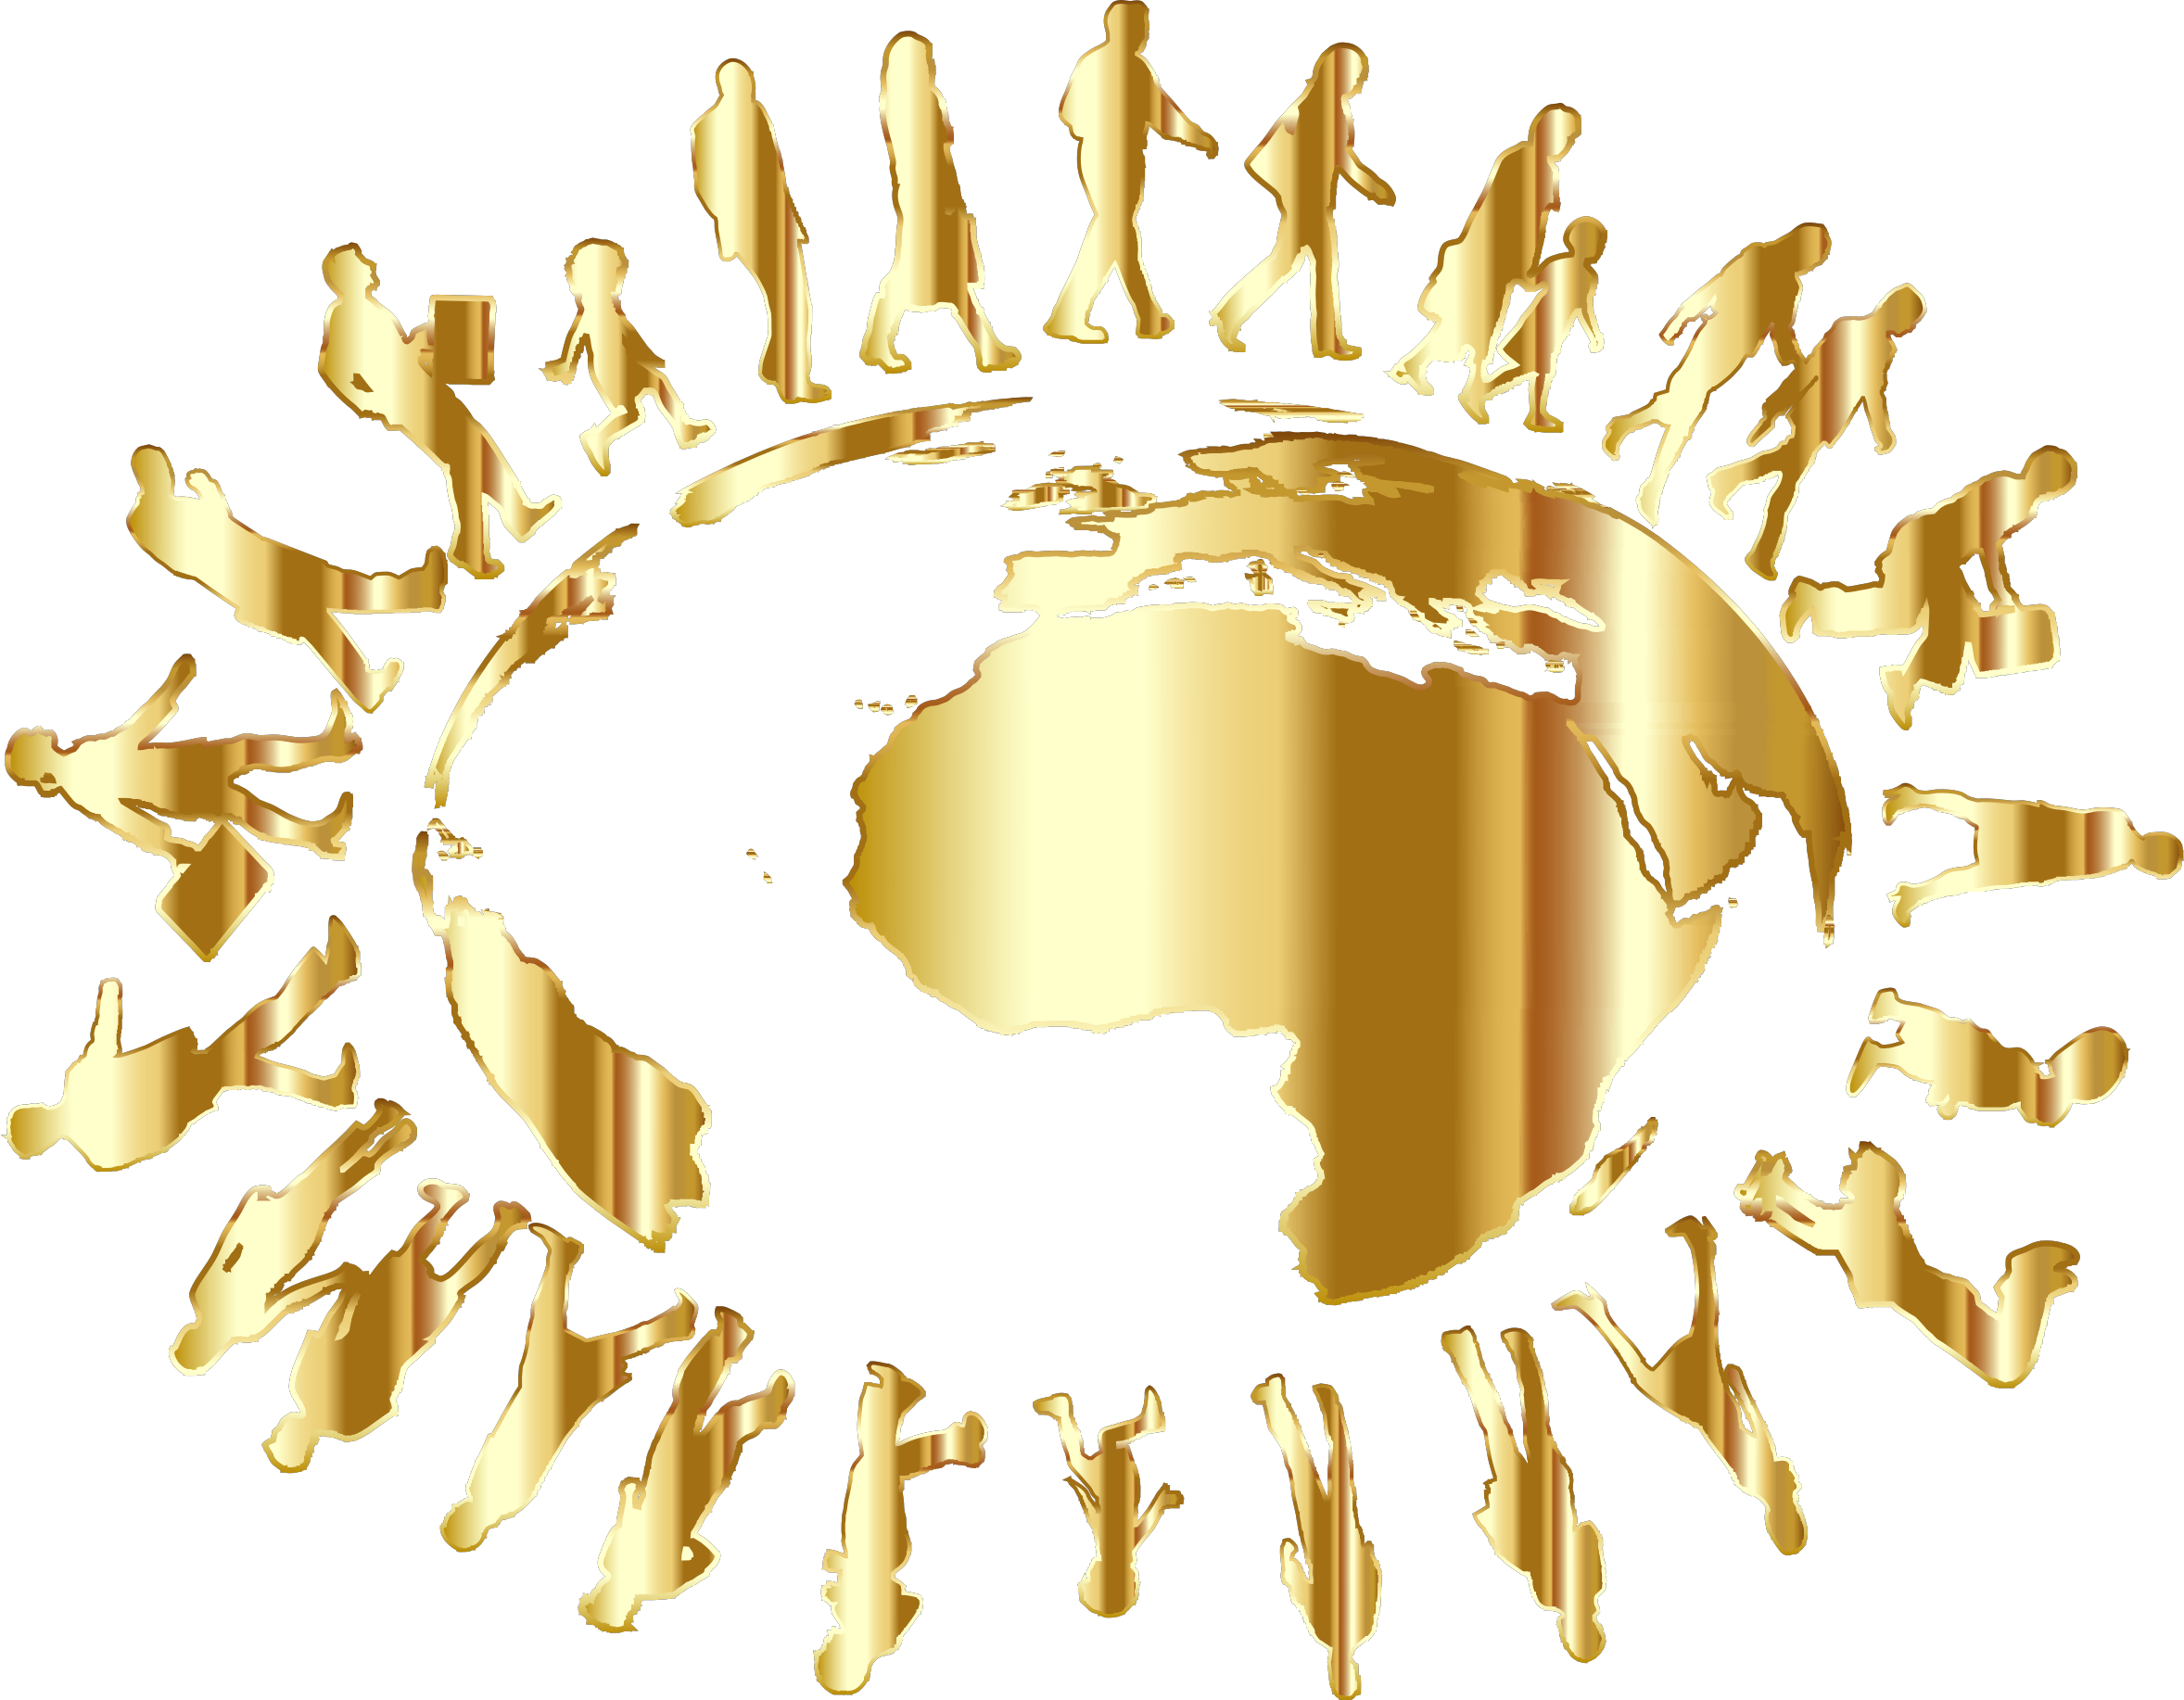 Gold globe png. Clipart people circling around